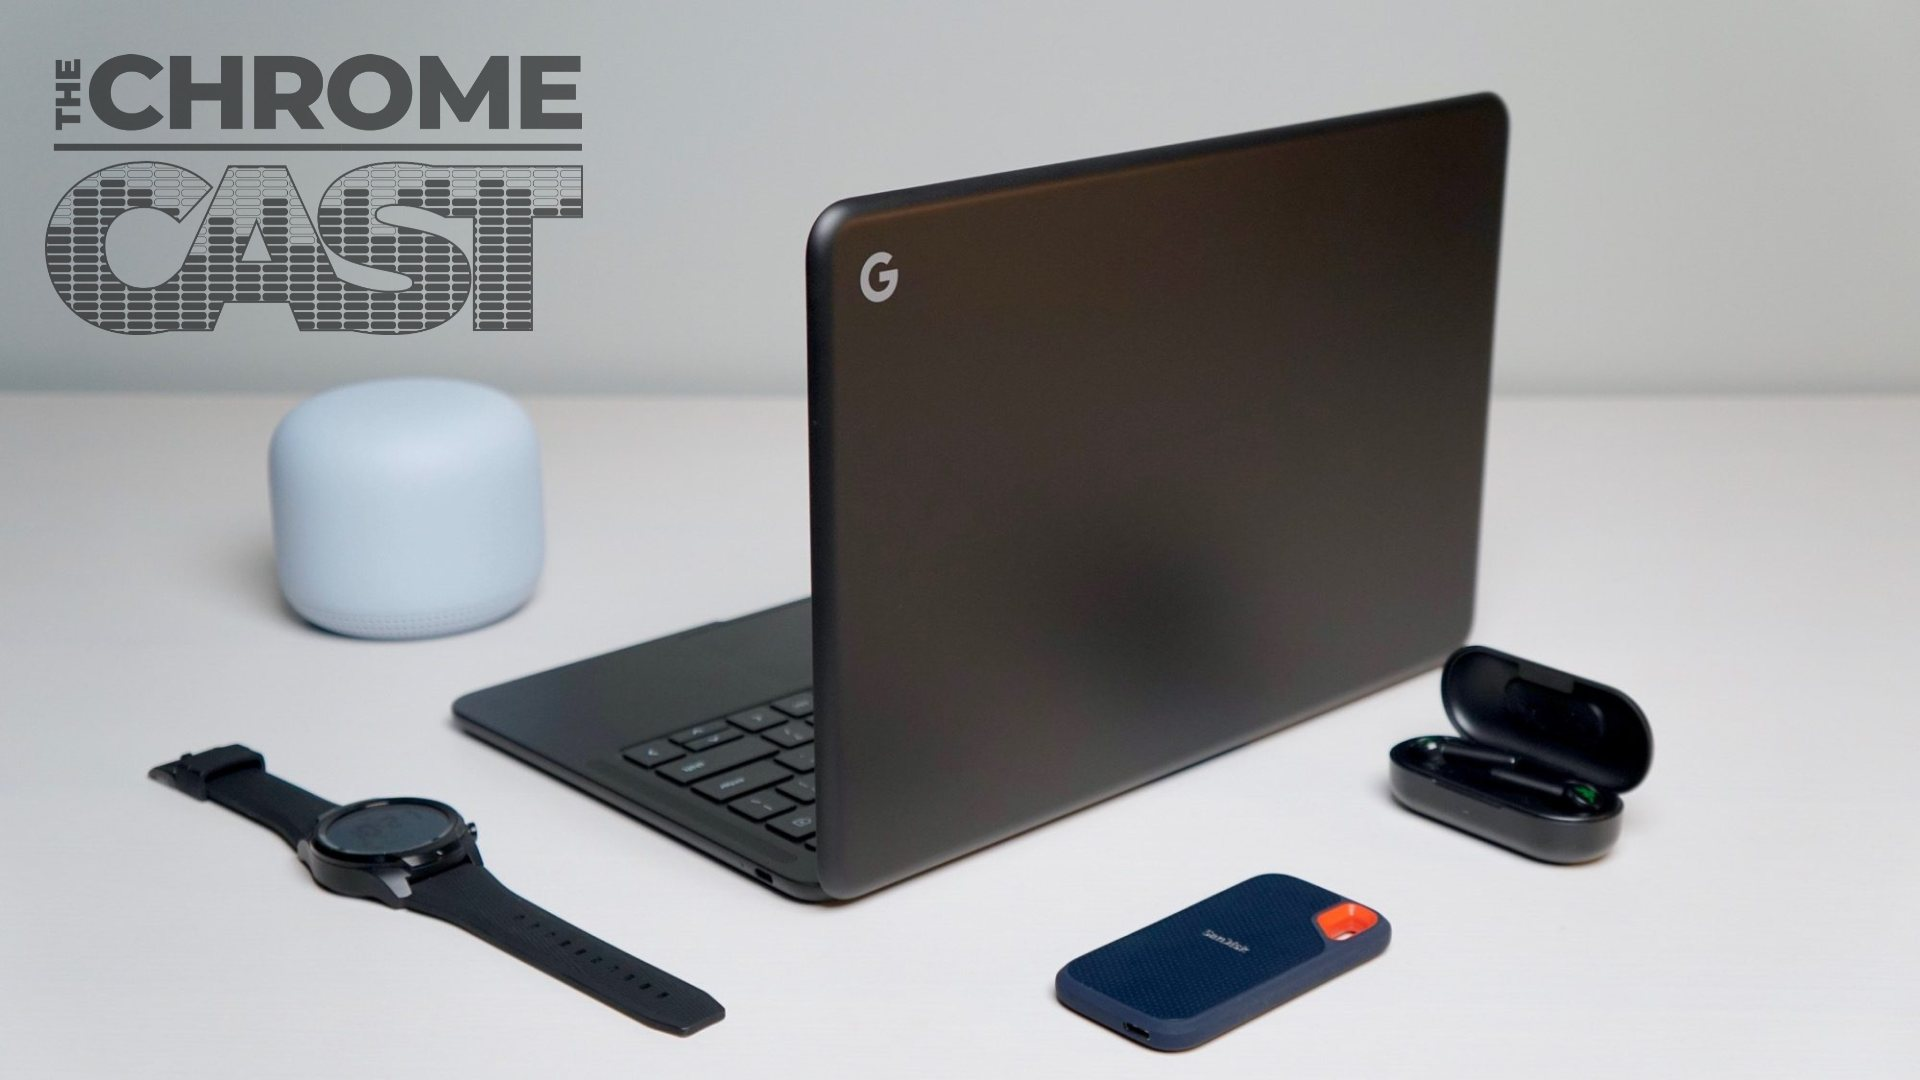 The Chrome Cast 40: More new Chromebooks appear and our staff picks for best gift ideas